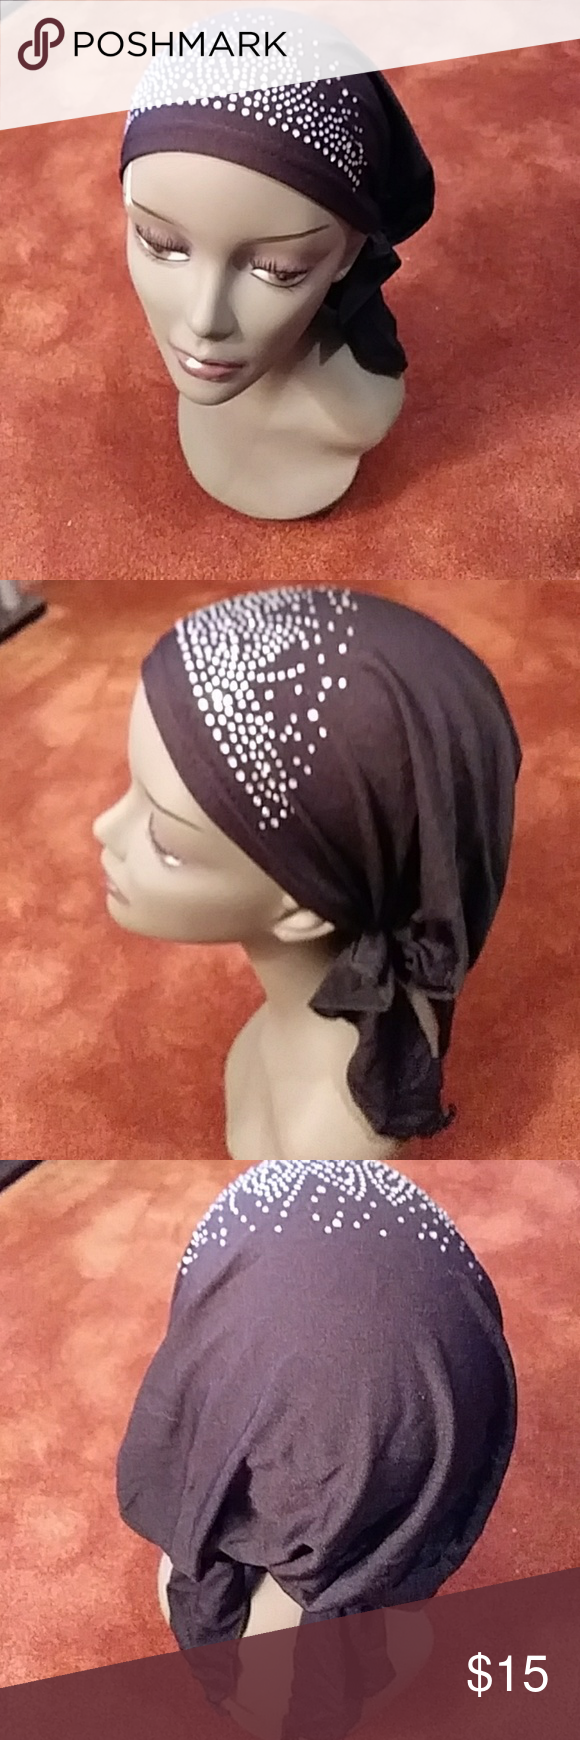 NIB chemo scarf It was designed for women undergoing hair loss due to chemotherapy treatments alopecia or other medically related hair loss. It is made specifically to be worn by women who have little or no hair. It's a stylish and comfortable alternative to wigs tying head scarves designer Accessories Hair Accessories #tieheadscarves NIB chemo scarf It was designed for women undergoing hair loss due to chemotherapy treatments alopecia or other medically related hair loss. It is made specificall #tieheadscarves